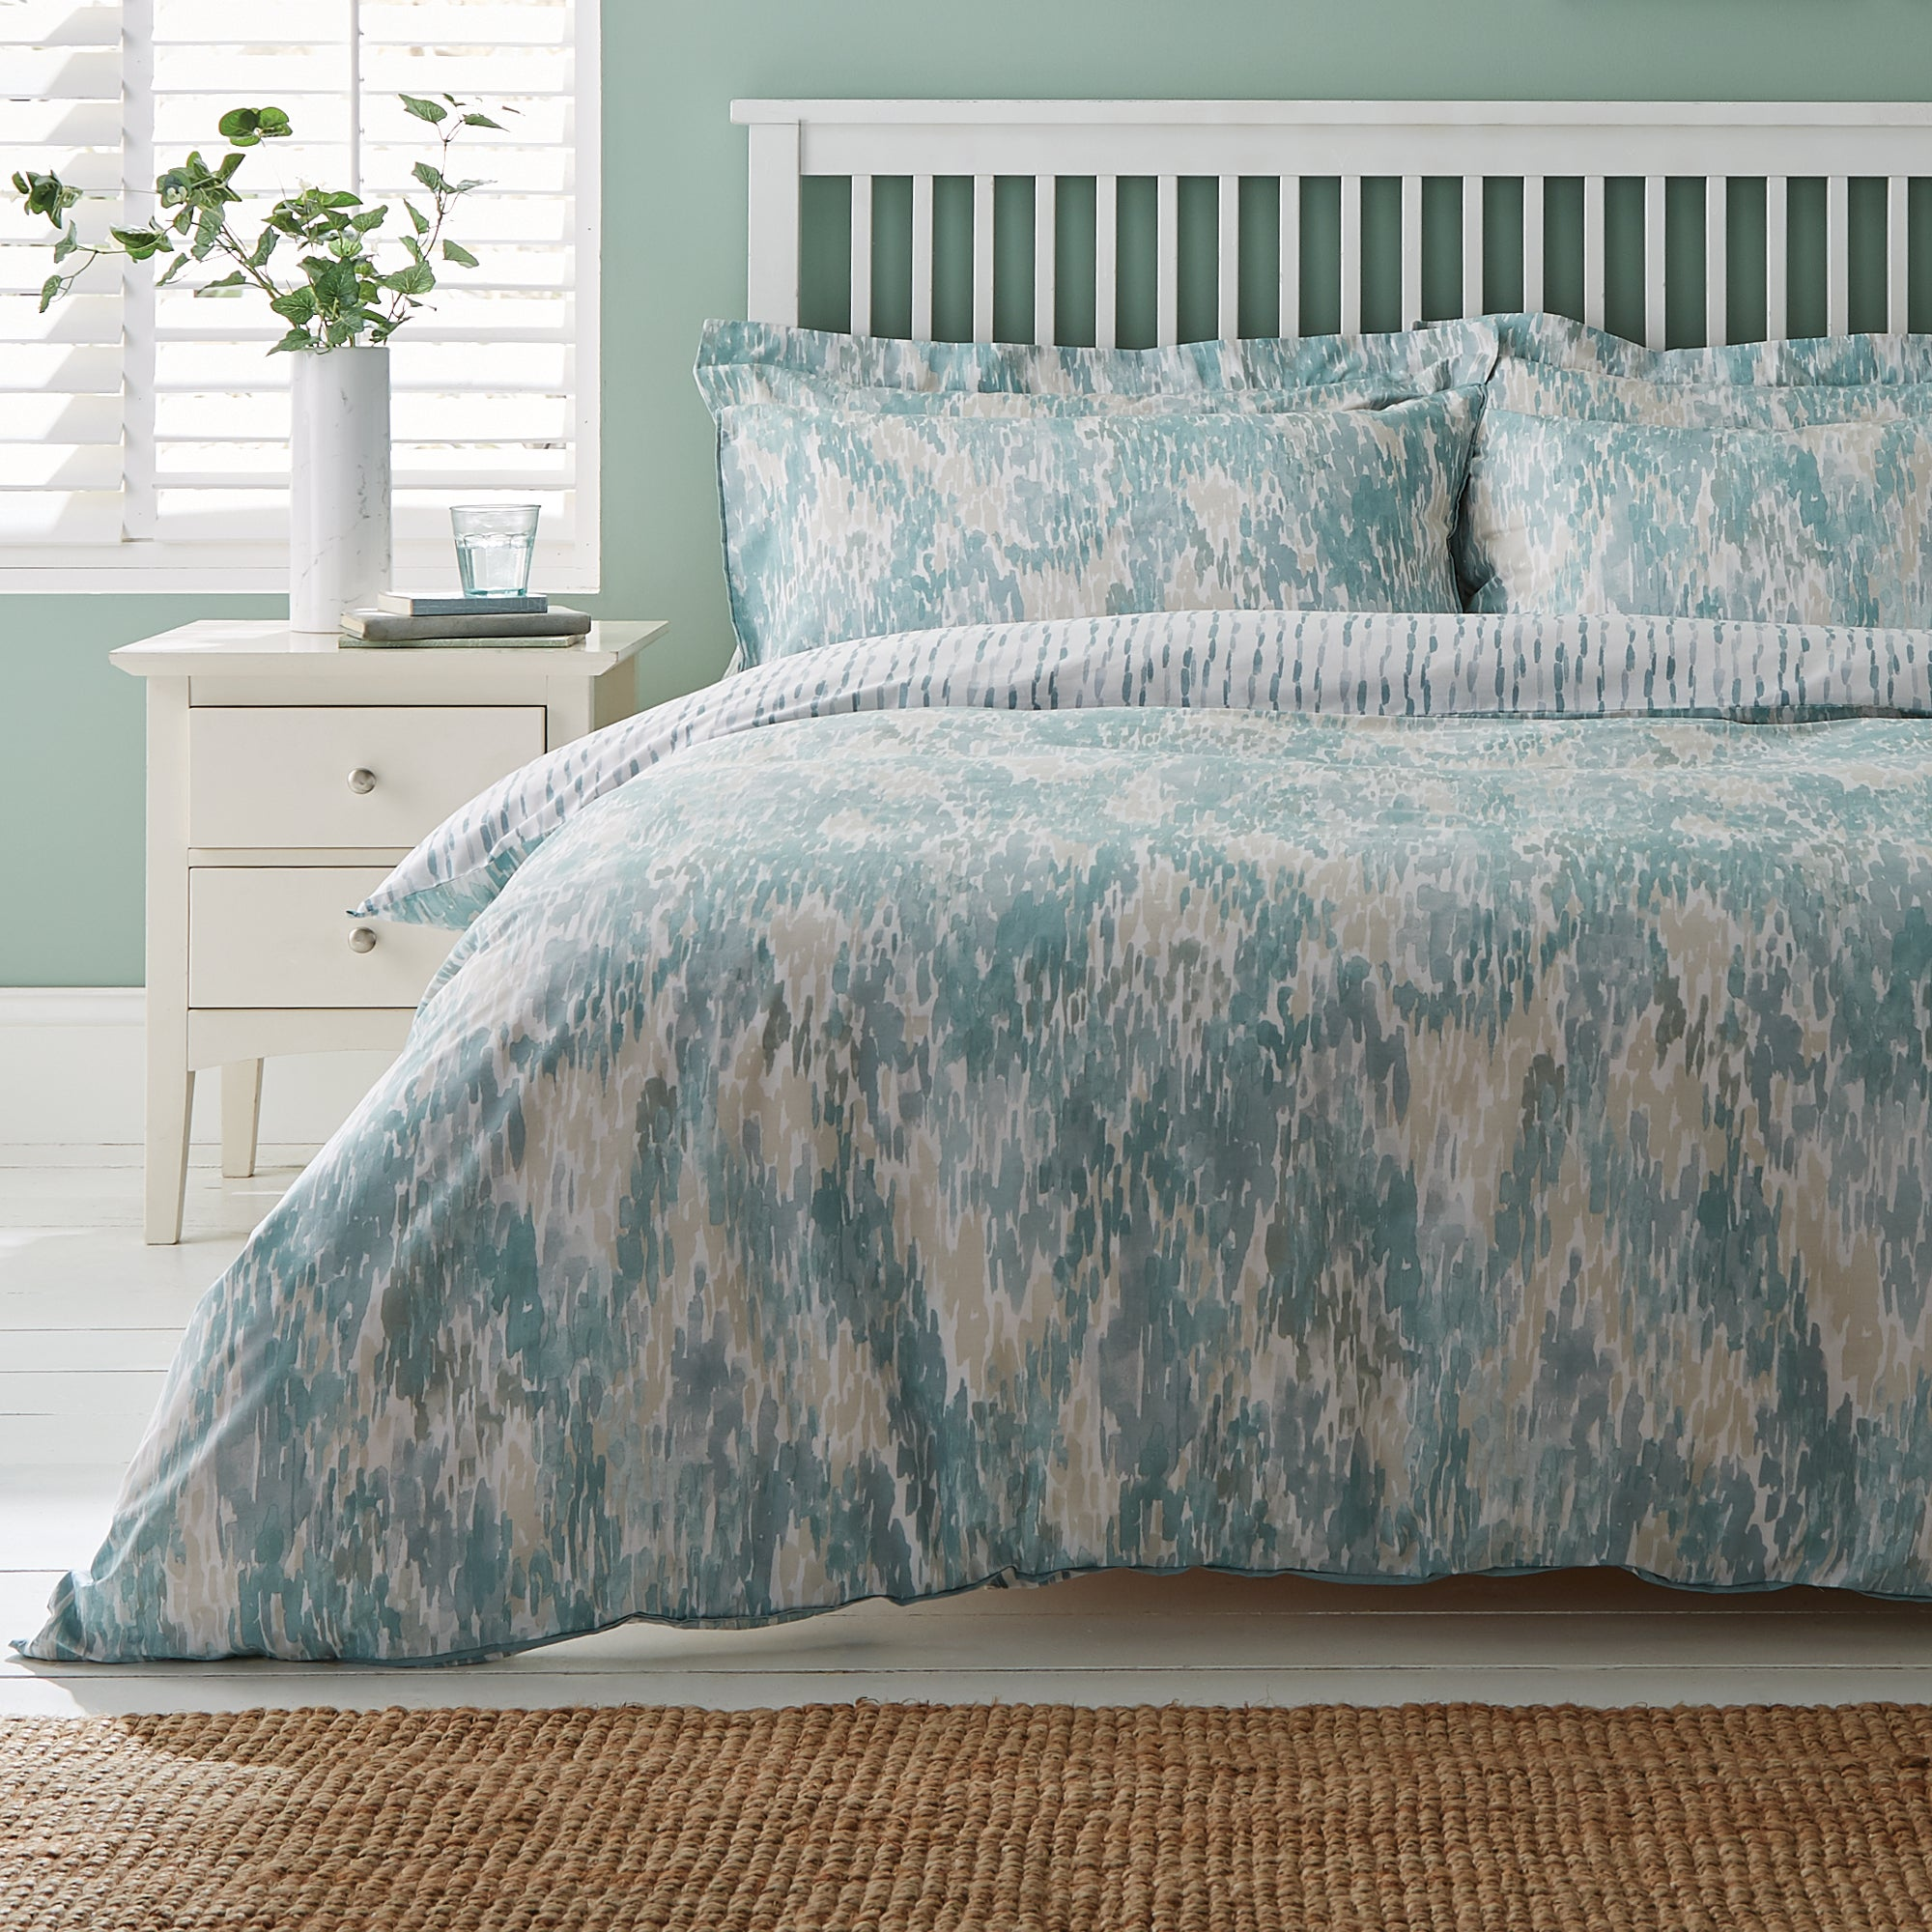 Waves Teal Duvet Cover and Pillowcase Set Teal Blue